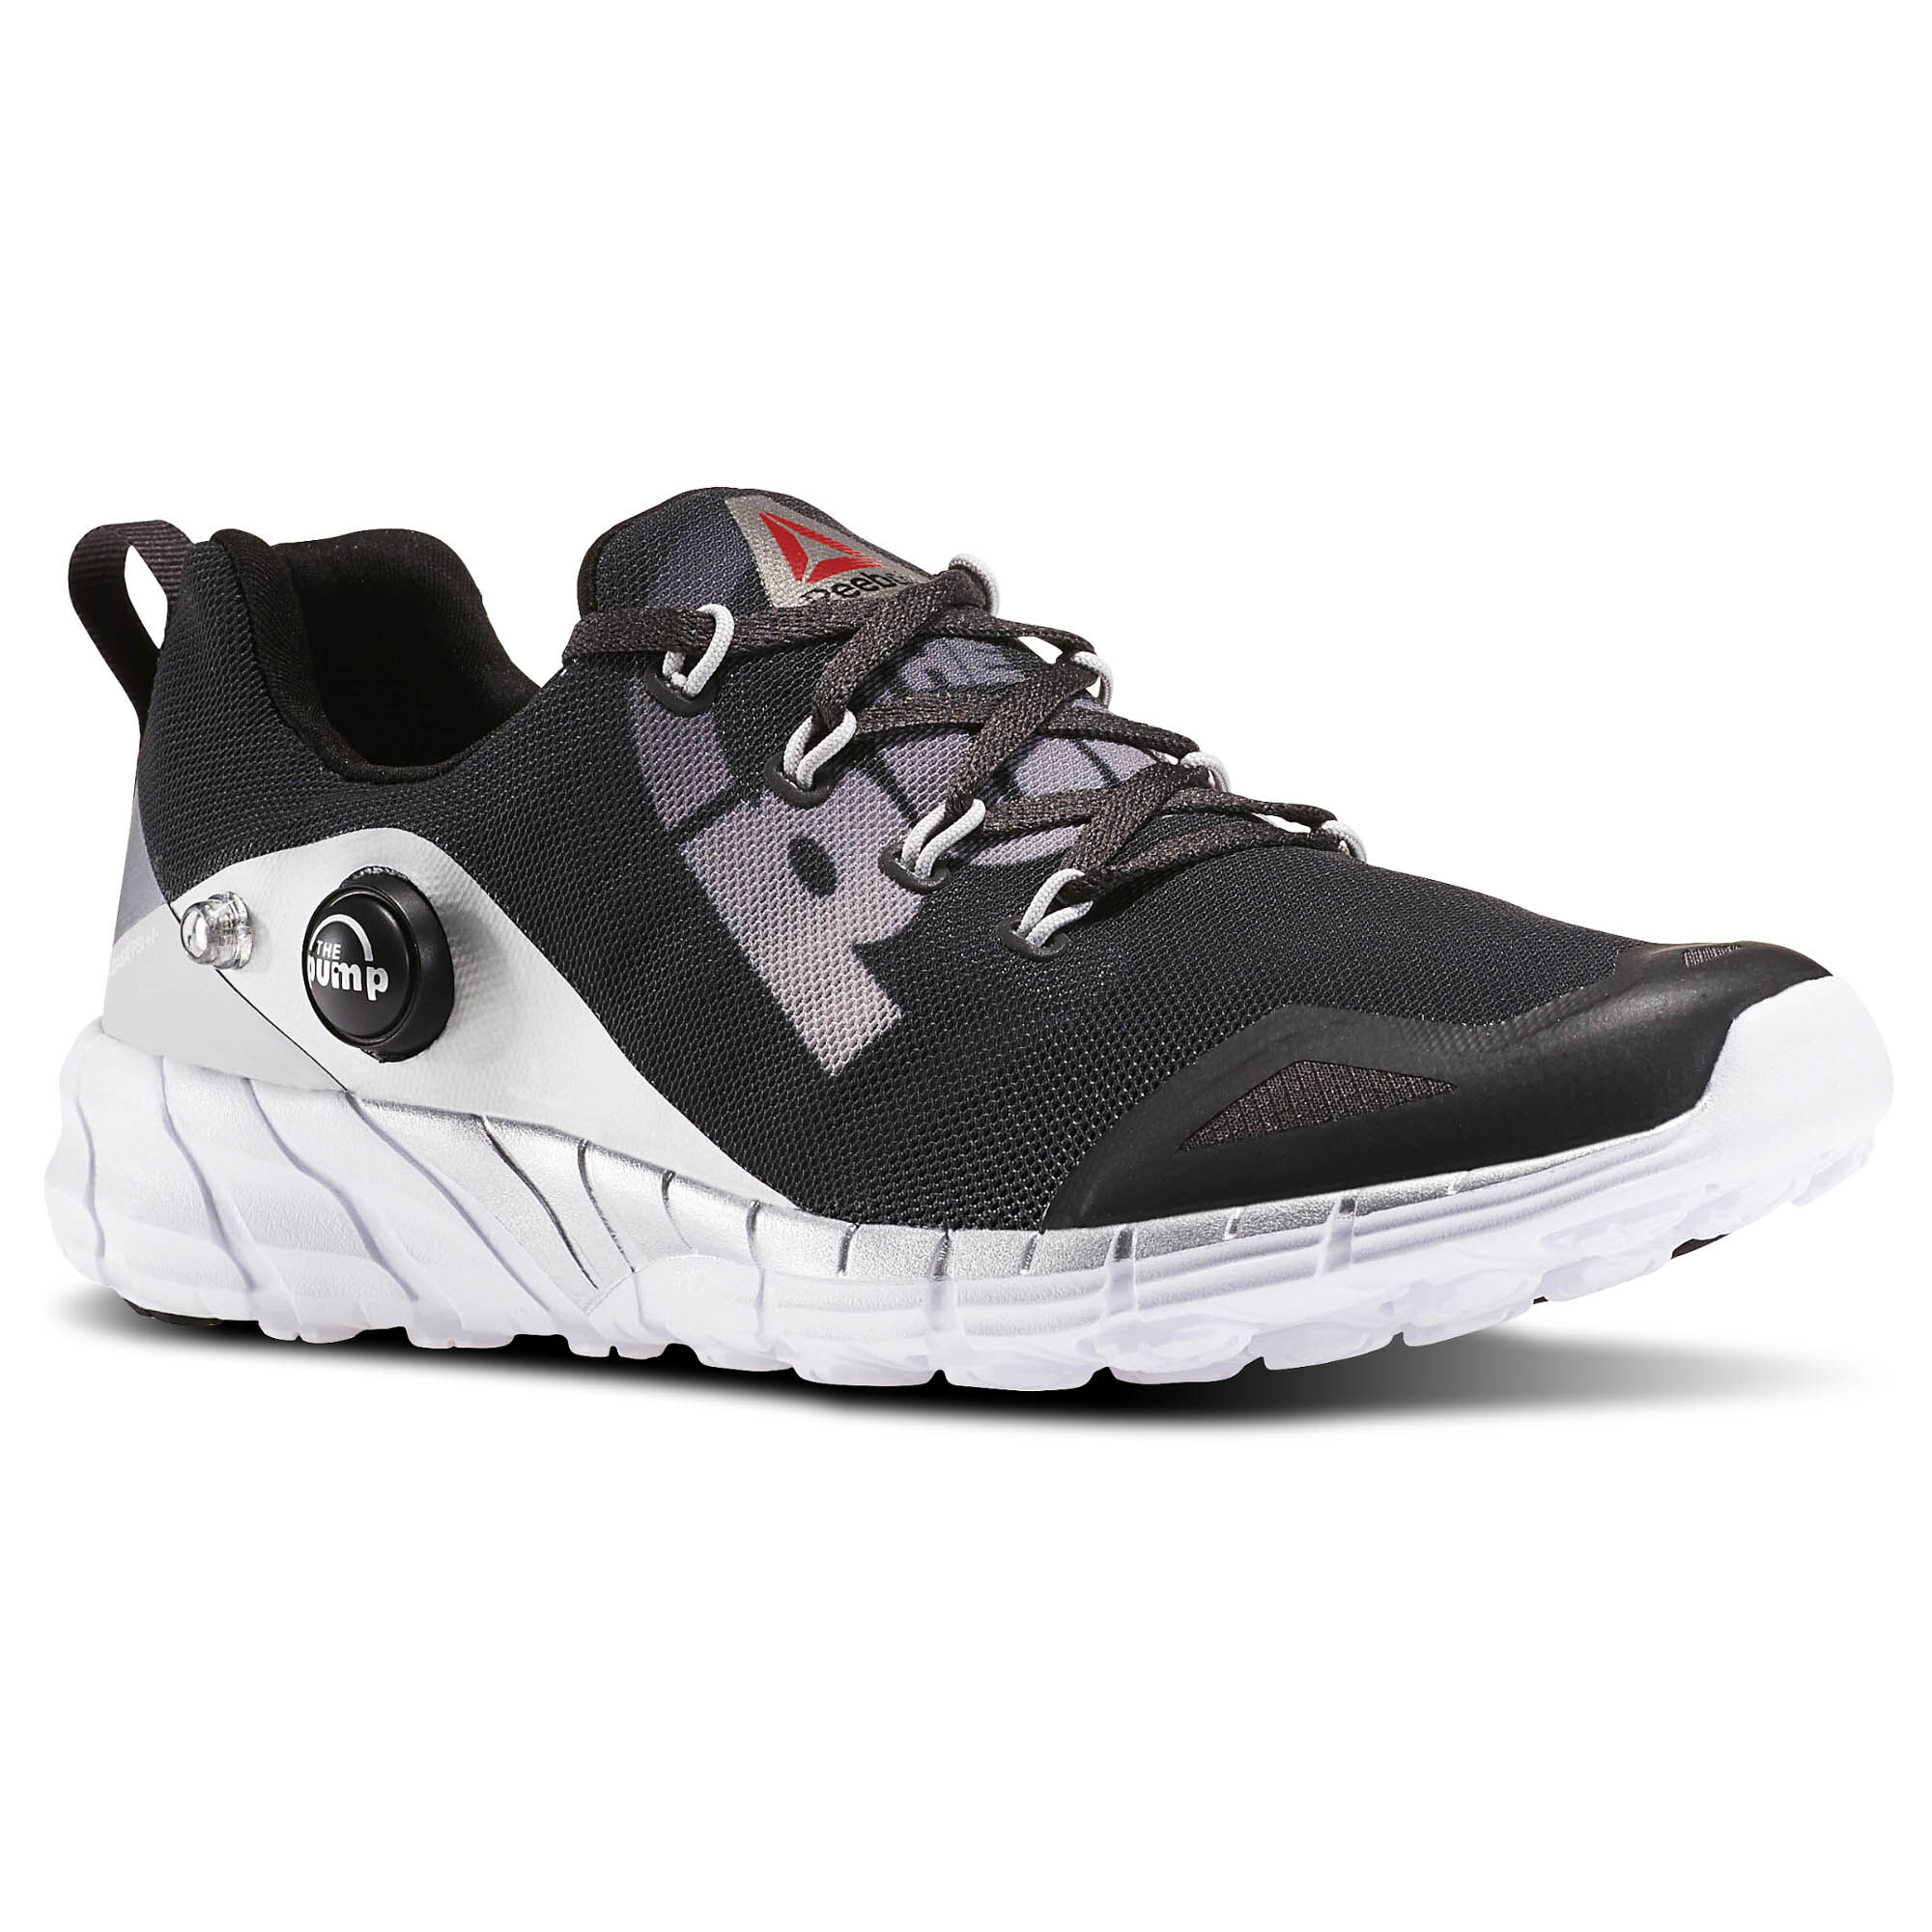 Good-Looking Mens Reebok 'pump Fusion' Sneakers Outlet Stores